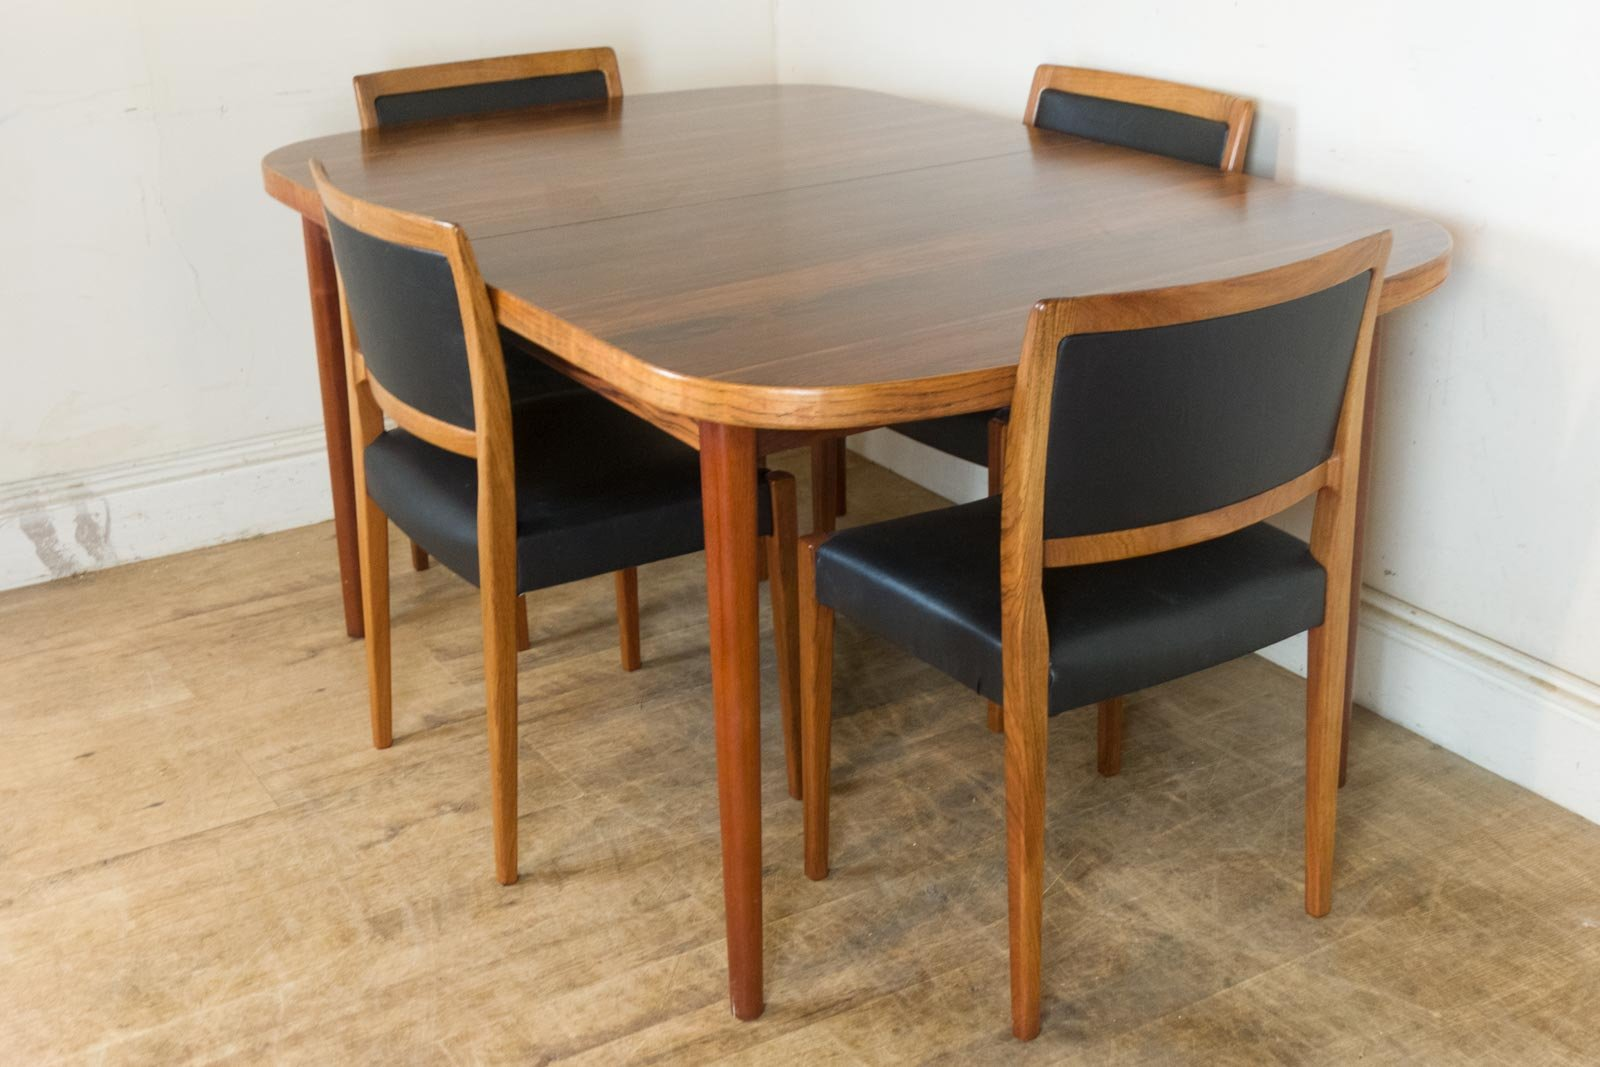 Rosewood Dining Table And 4 Chairs By Nils Jonsson For